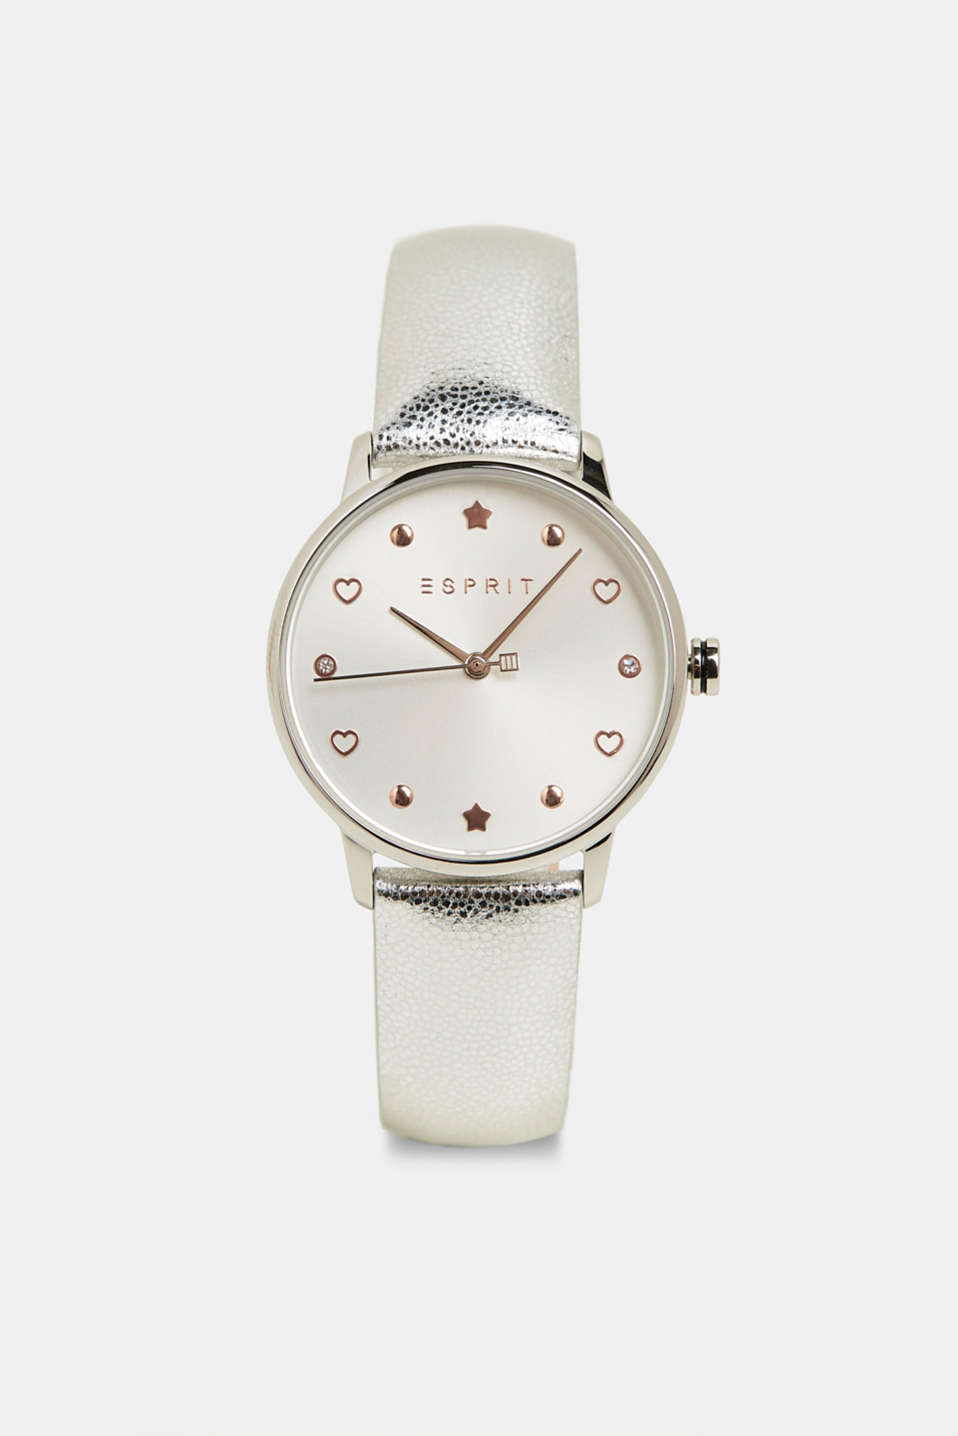 Esprit - Watch and bracelet set